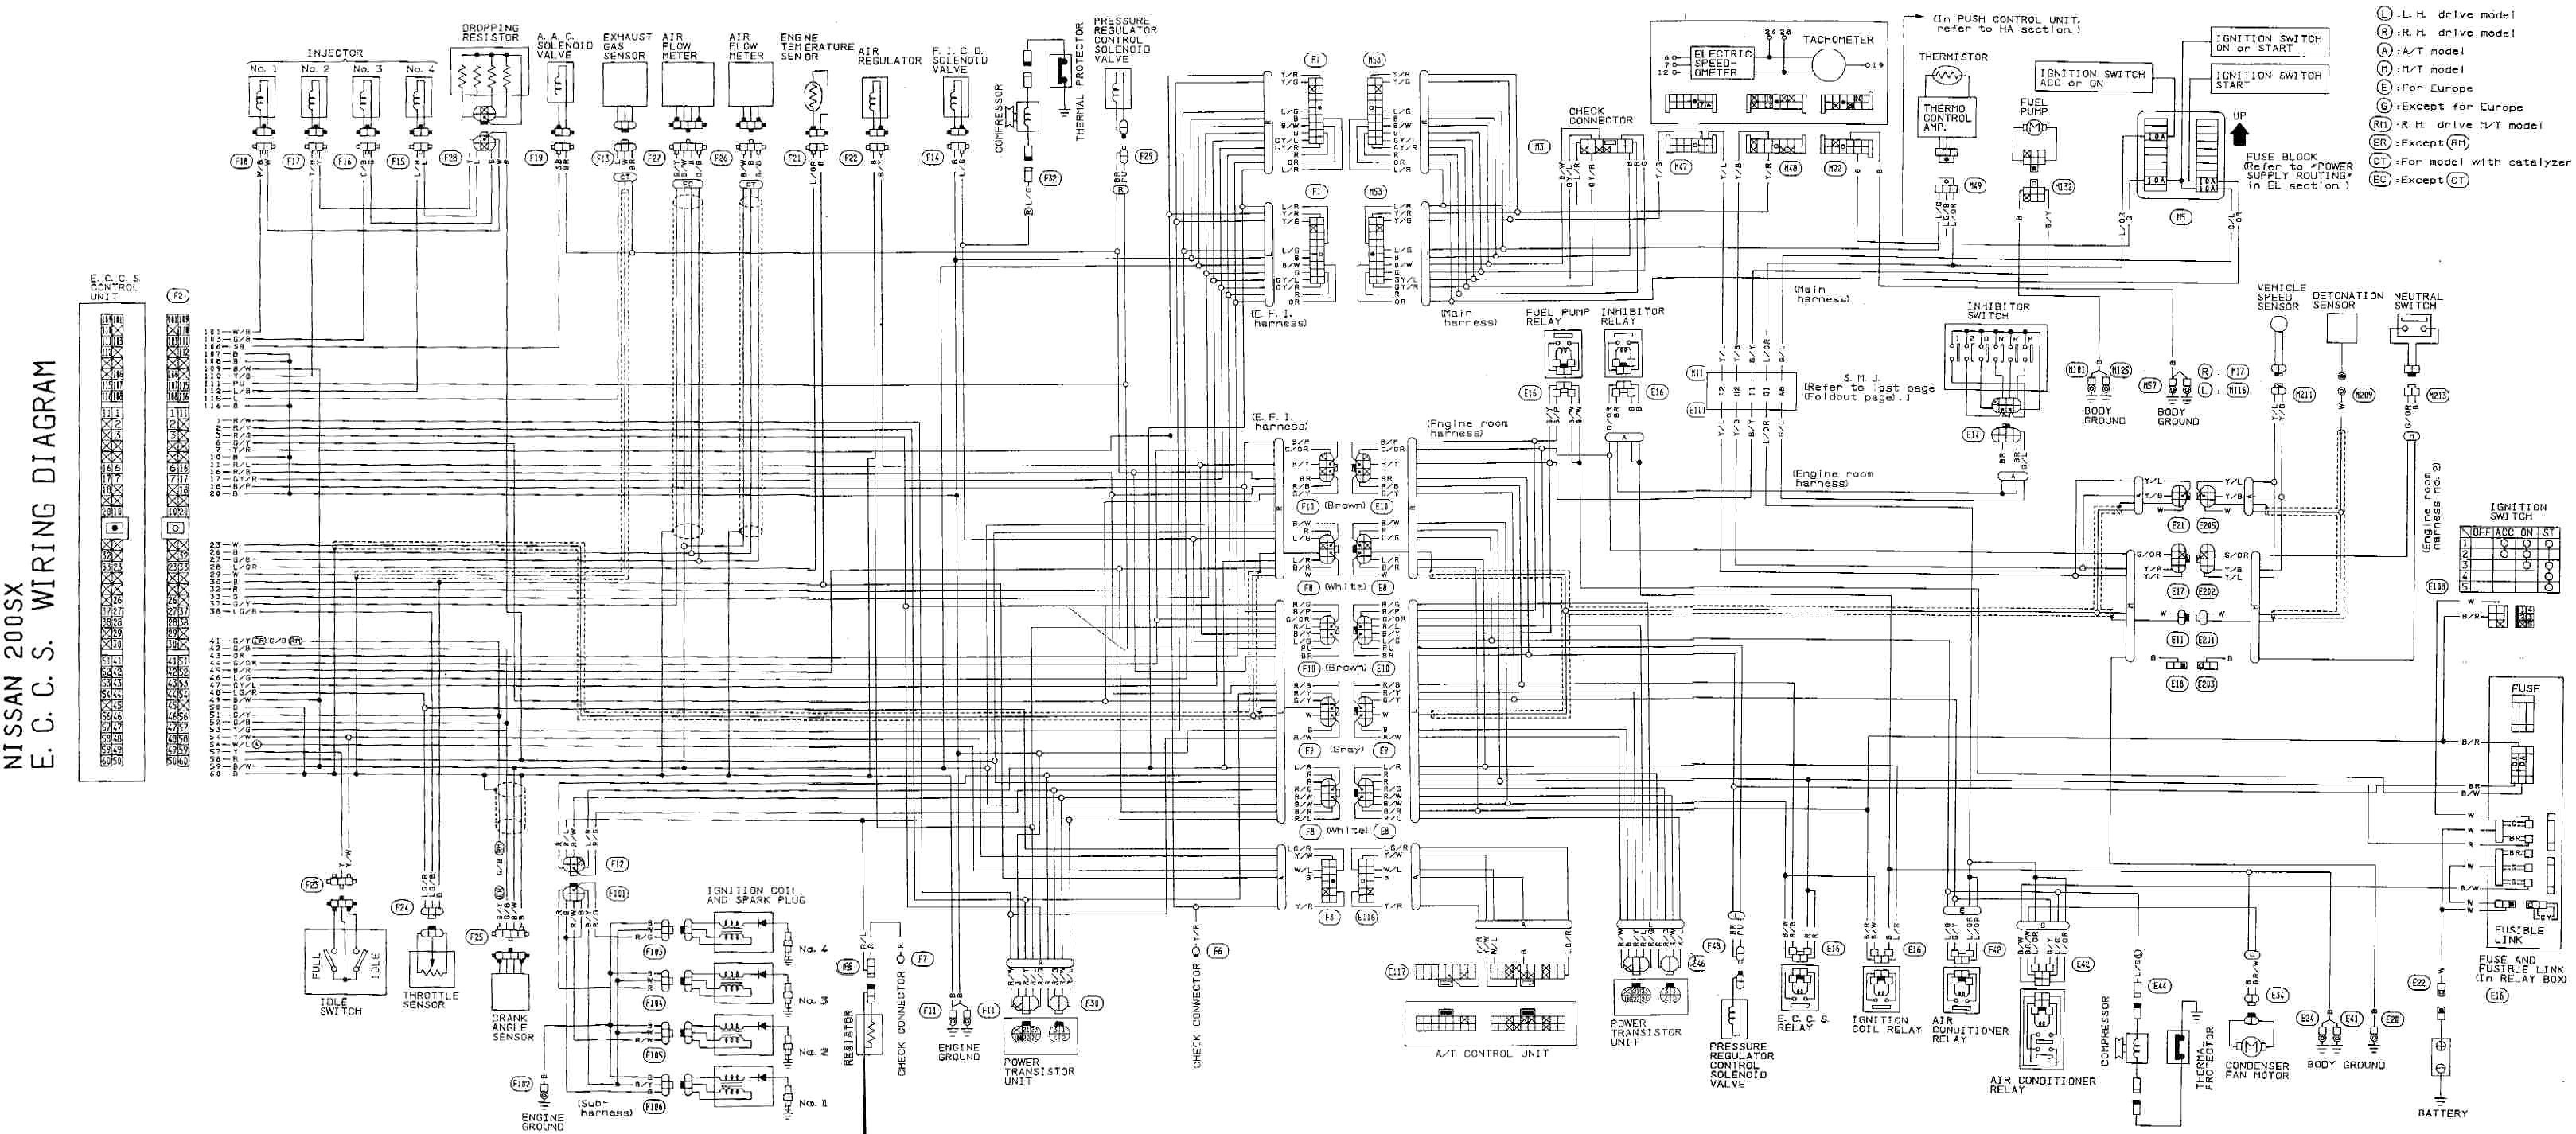 2006 Nissan Sentra Engine Diagram Nissan Wiring Harness Diagram Free Picture Schematic Worksheet and Of 2006 Nissan Sentra Engine Diagram